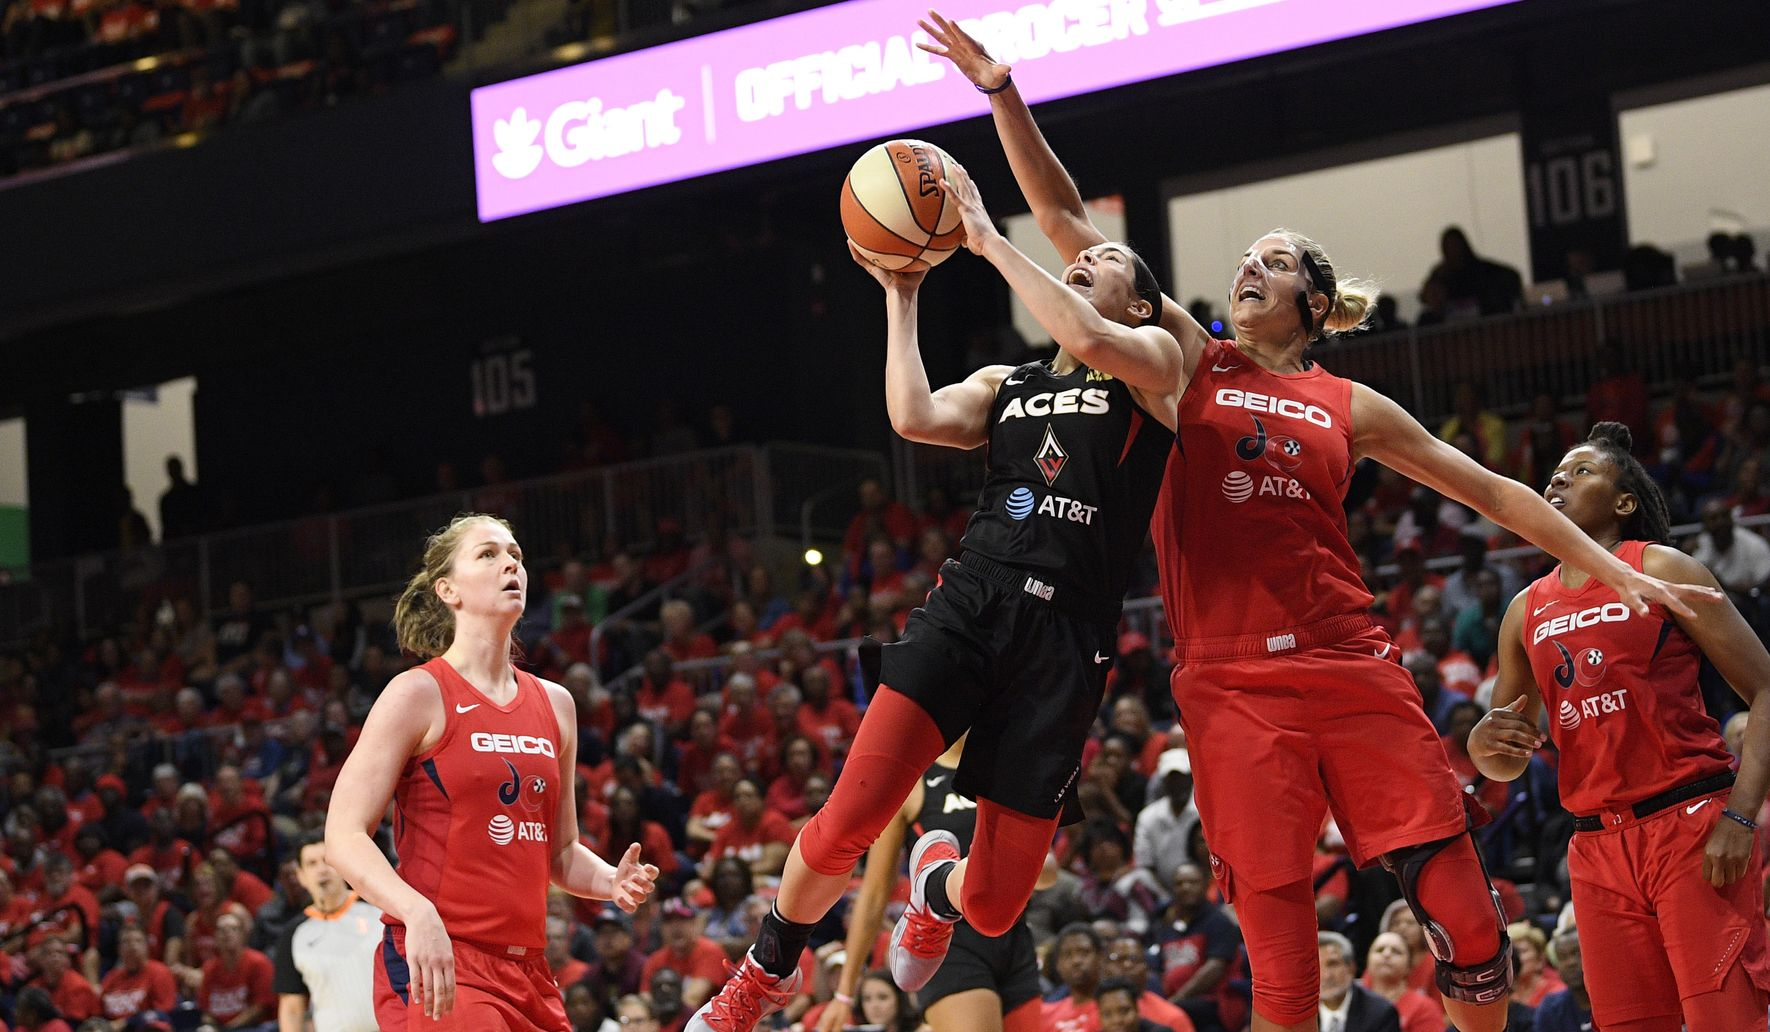 Mystics work on tightening transition D while Aces rest after close Game 1